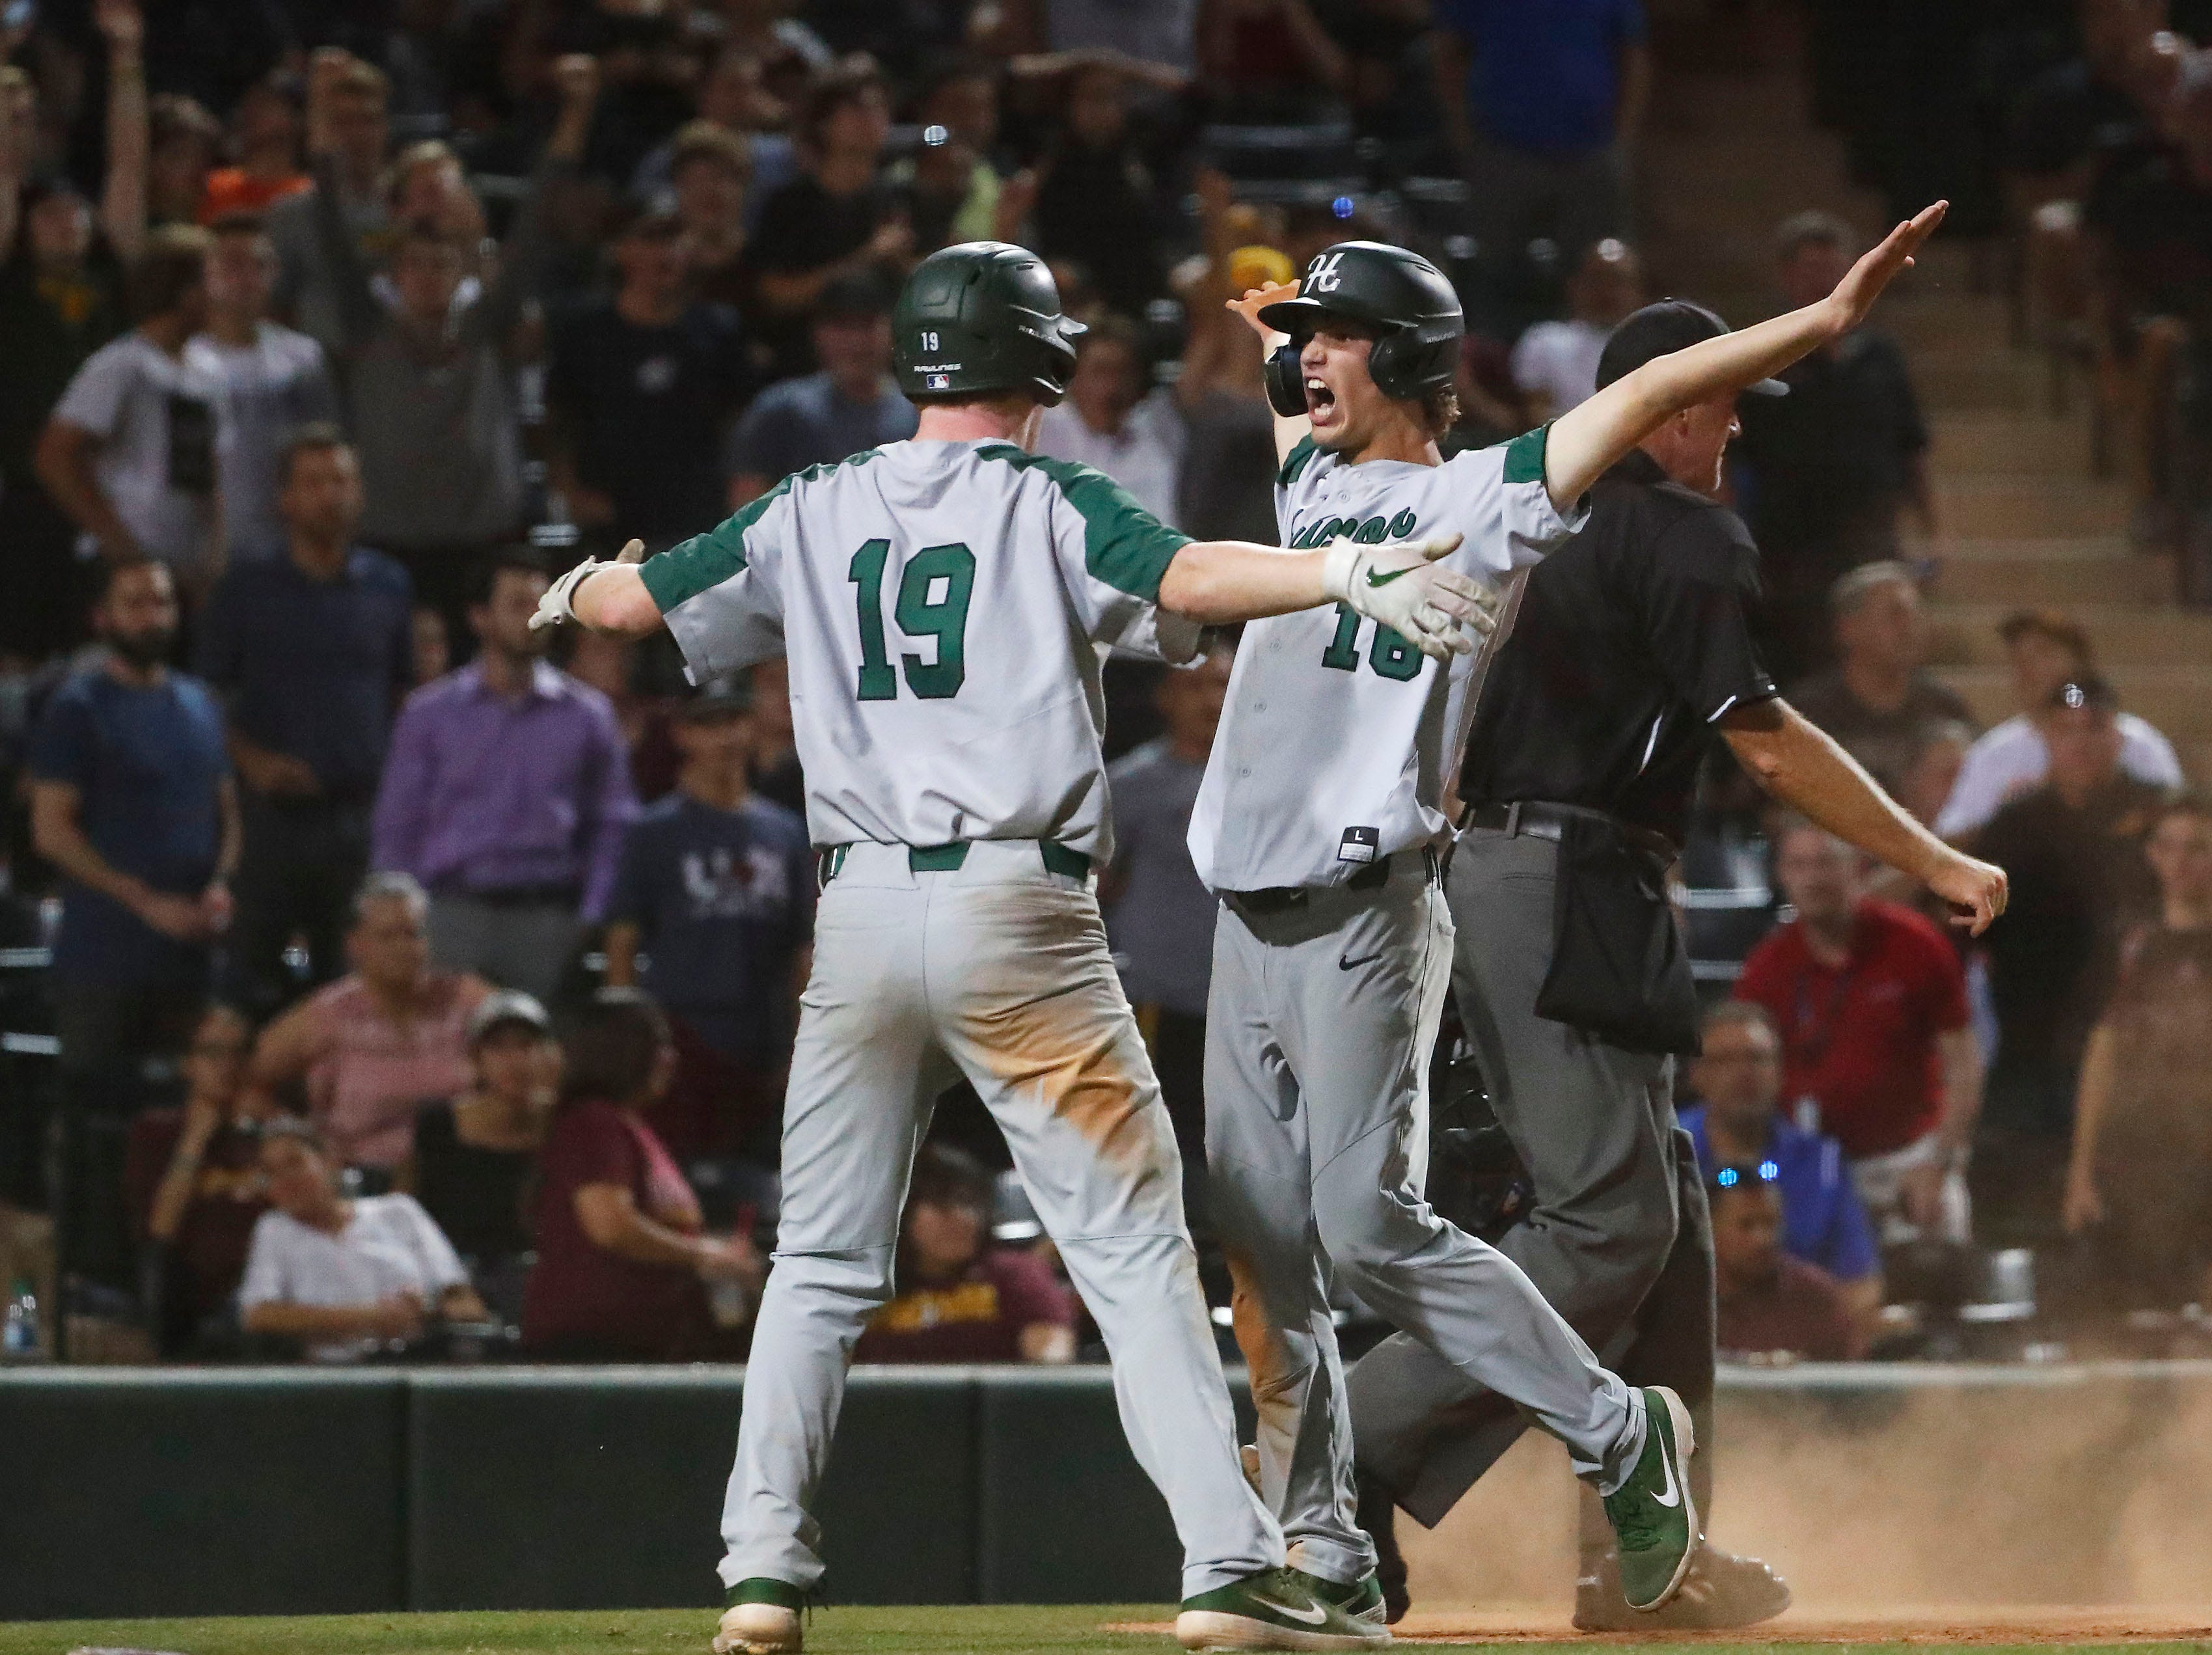 Horizon's Brady Miltenberger (16) celebrates with Justin Lieberman (19) after scoring against Nogales in the 15th inning during the 5A State Baseball Championship in Tempe, Ariz. May 14, 2019.